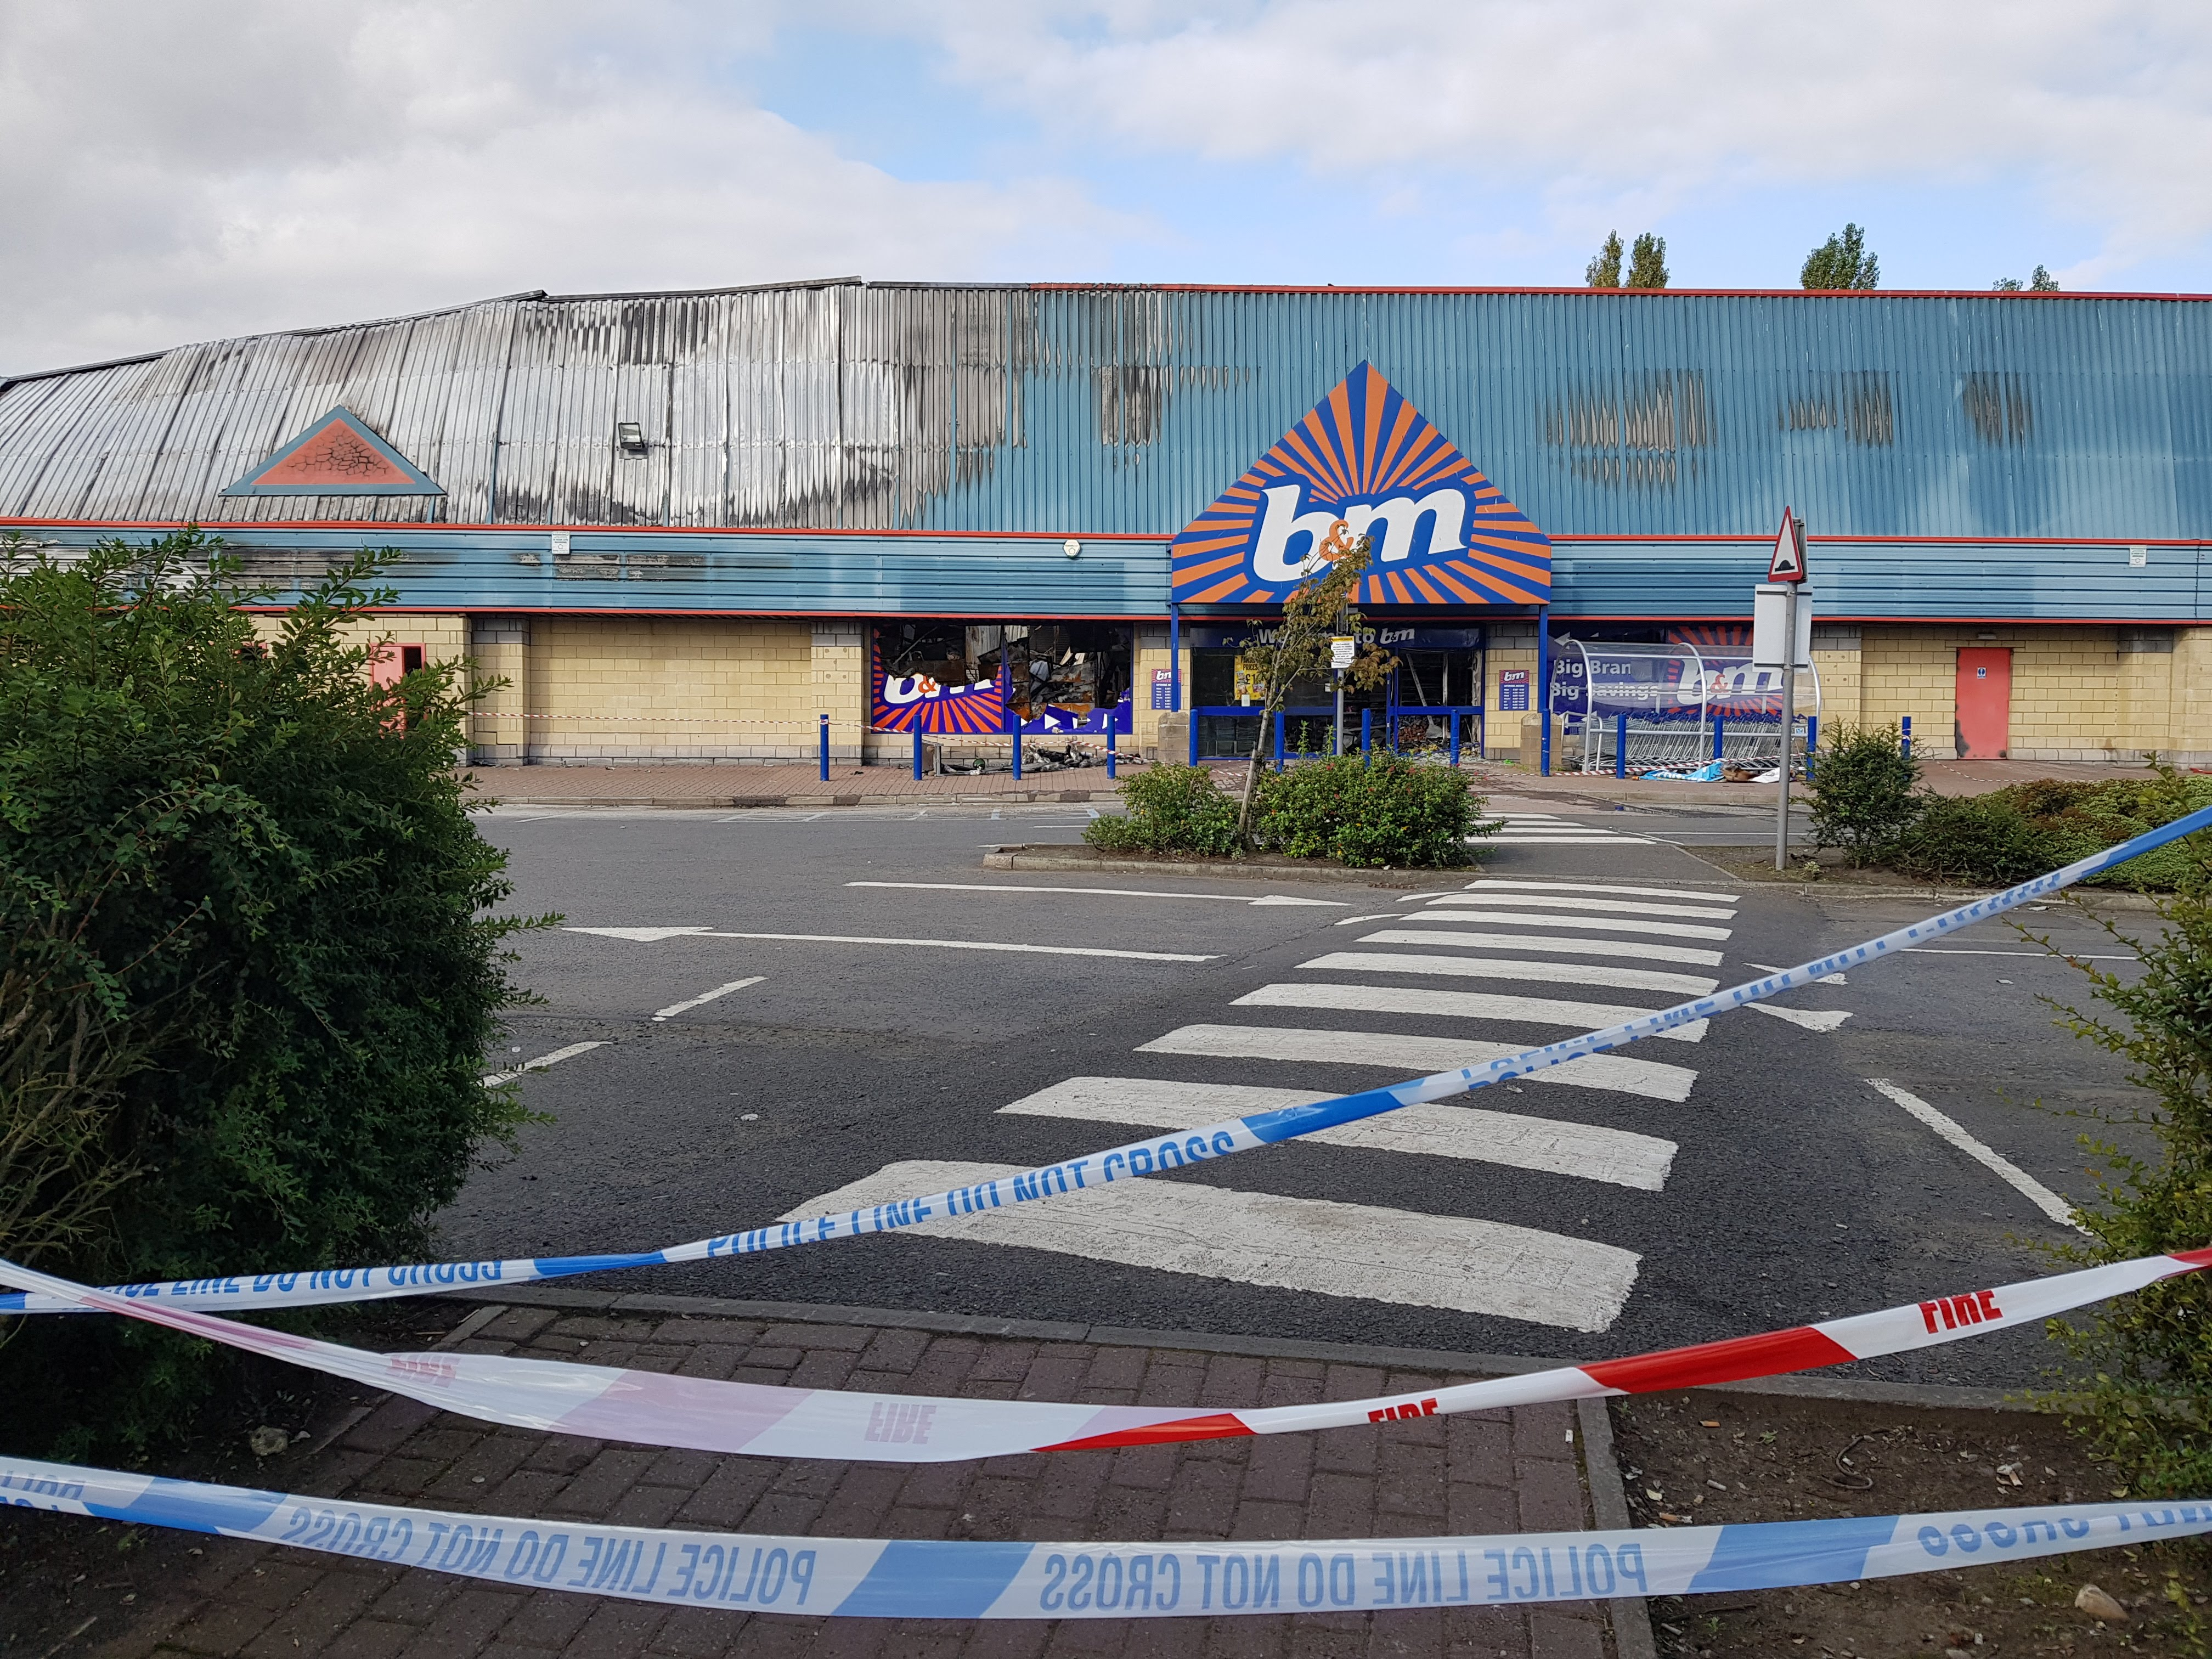 Cordoned off area after the B&M fire.